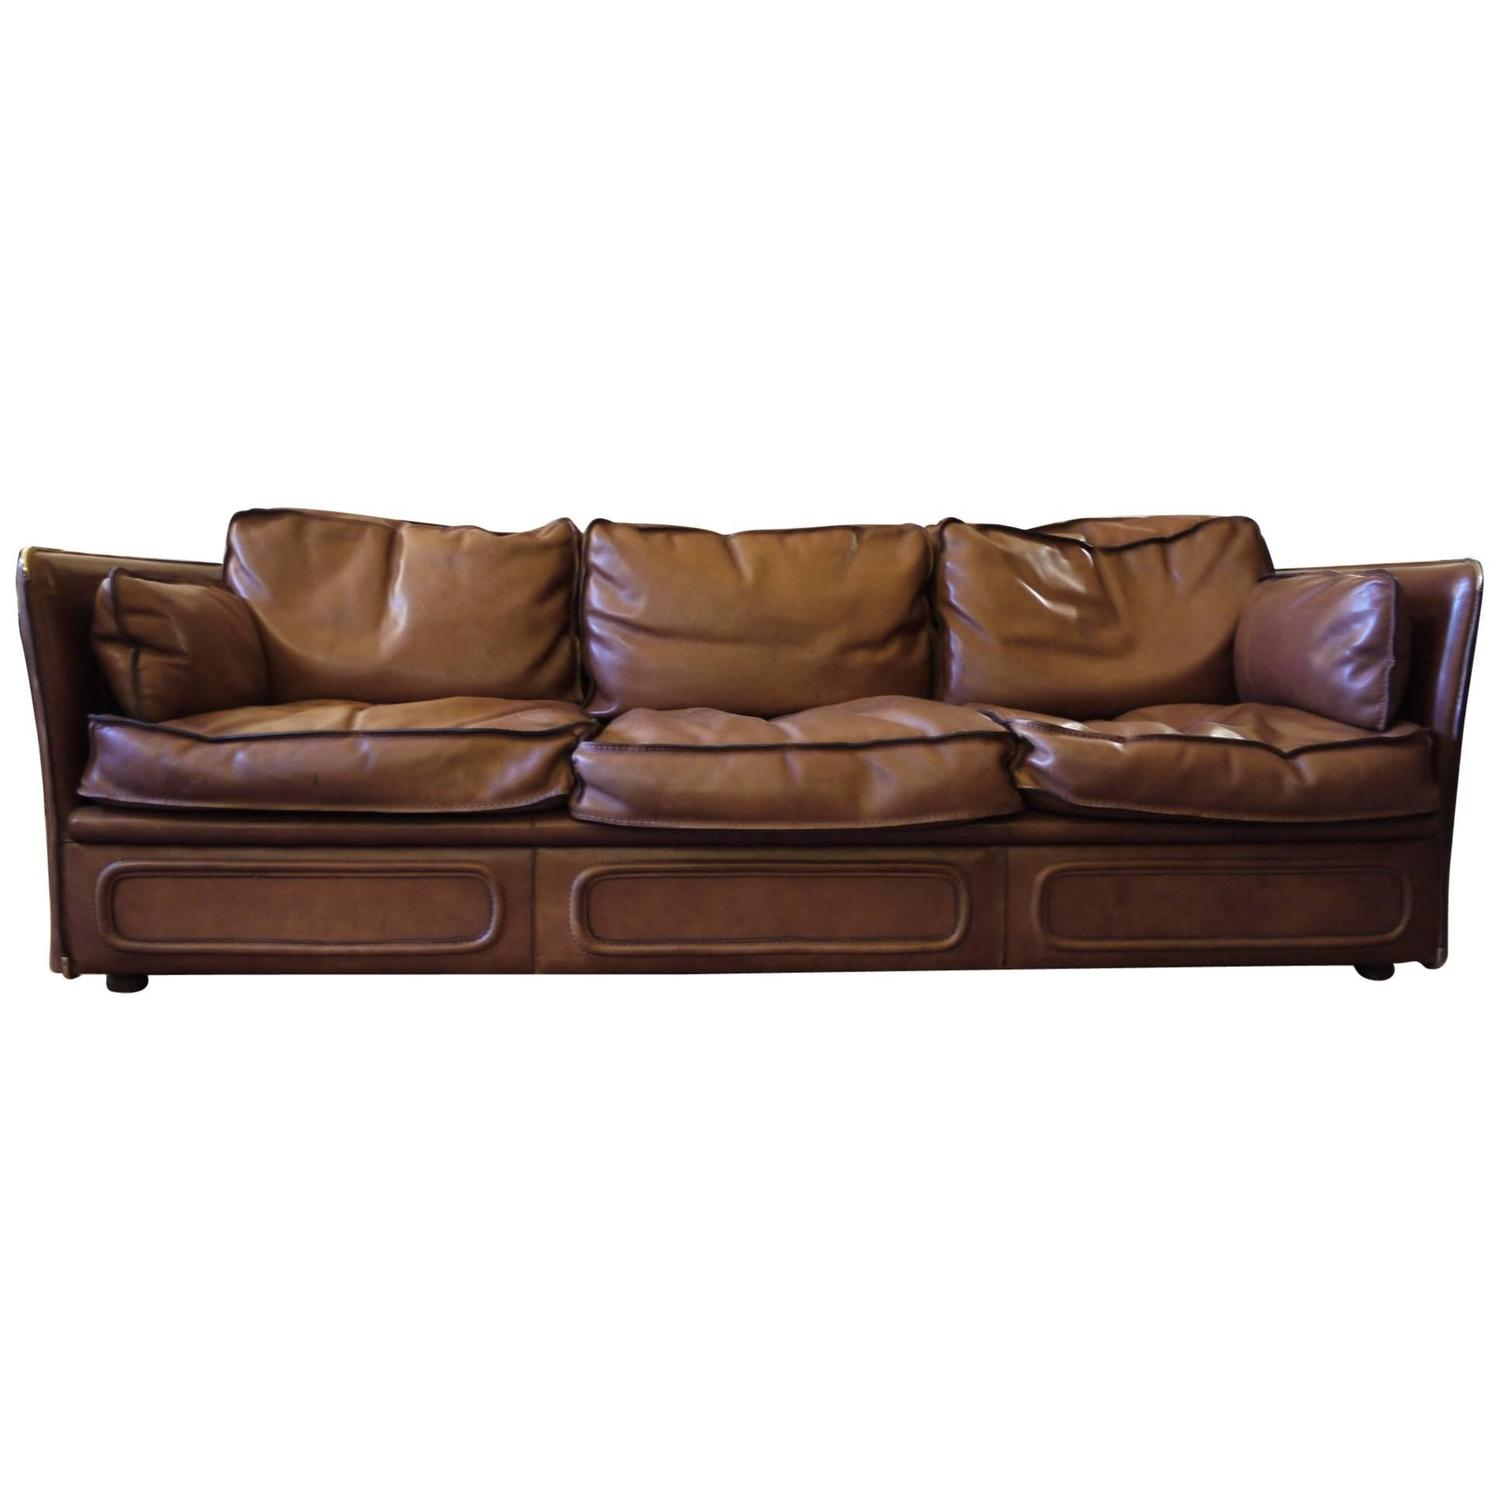 Mid Century Modern Gorgeous Leather Sofa by Roche Bobois at 1stdibs